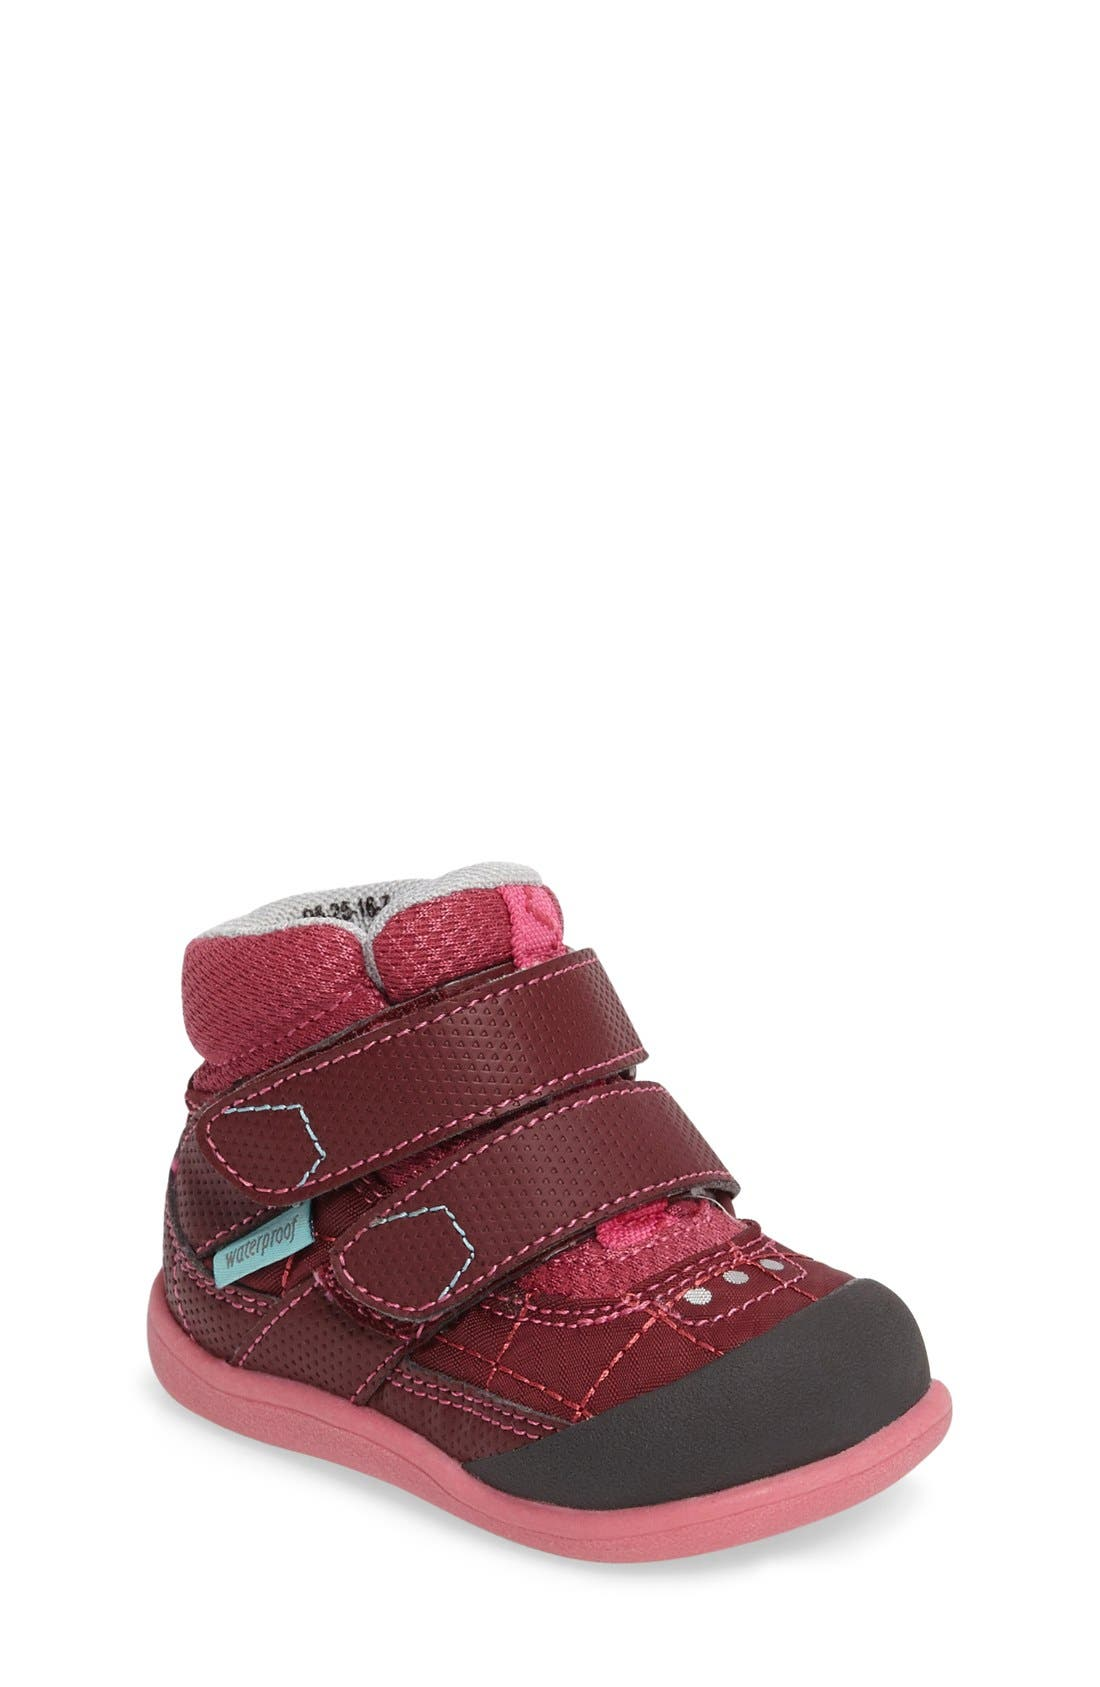 Atlas Waterproof Boot,                         Main,                         color, Burgundy/ Berry